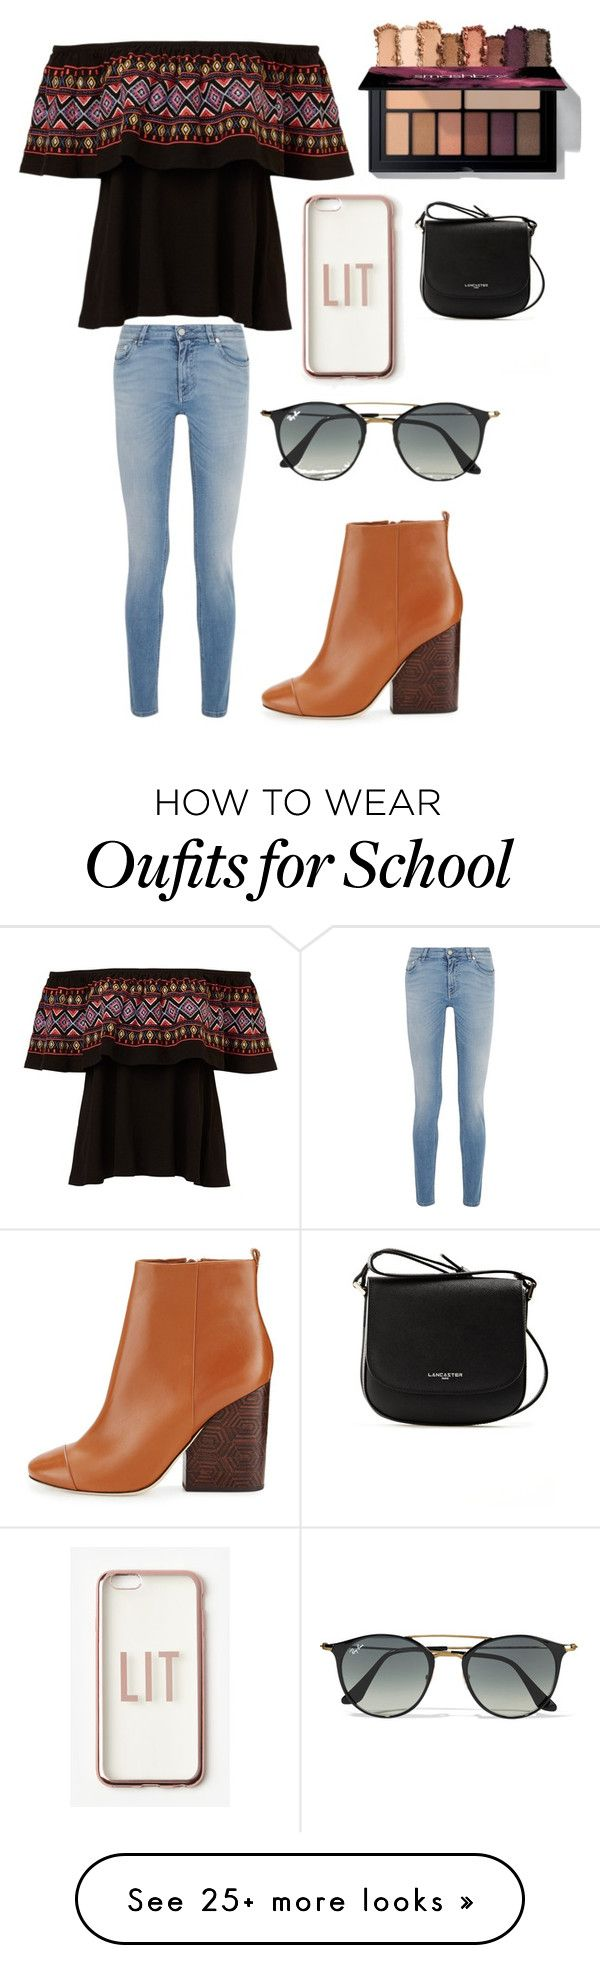 """""""School outfit"""" by makeuplover22 on Polyvore featuring Givenchy, Missguided, Ray-Ban, Lancaster and Tory Burch"""